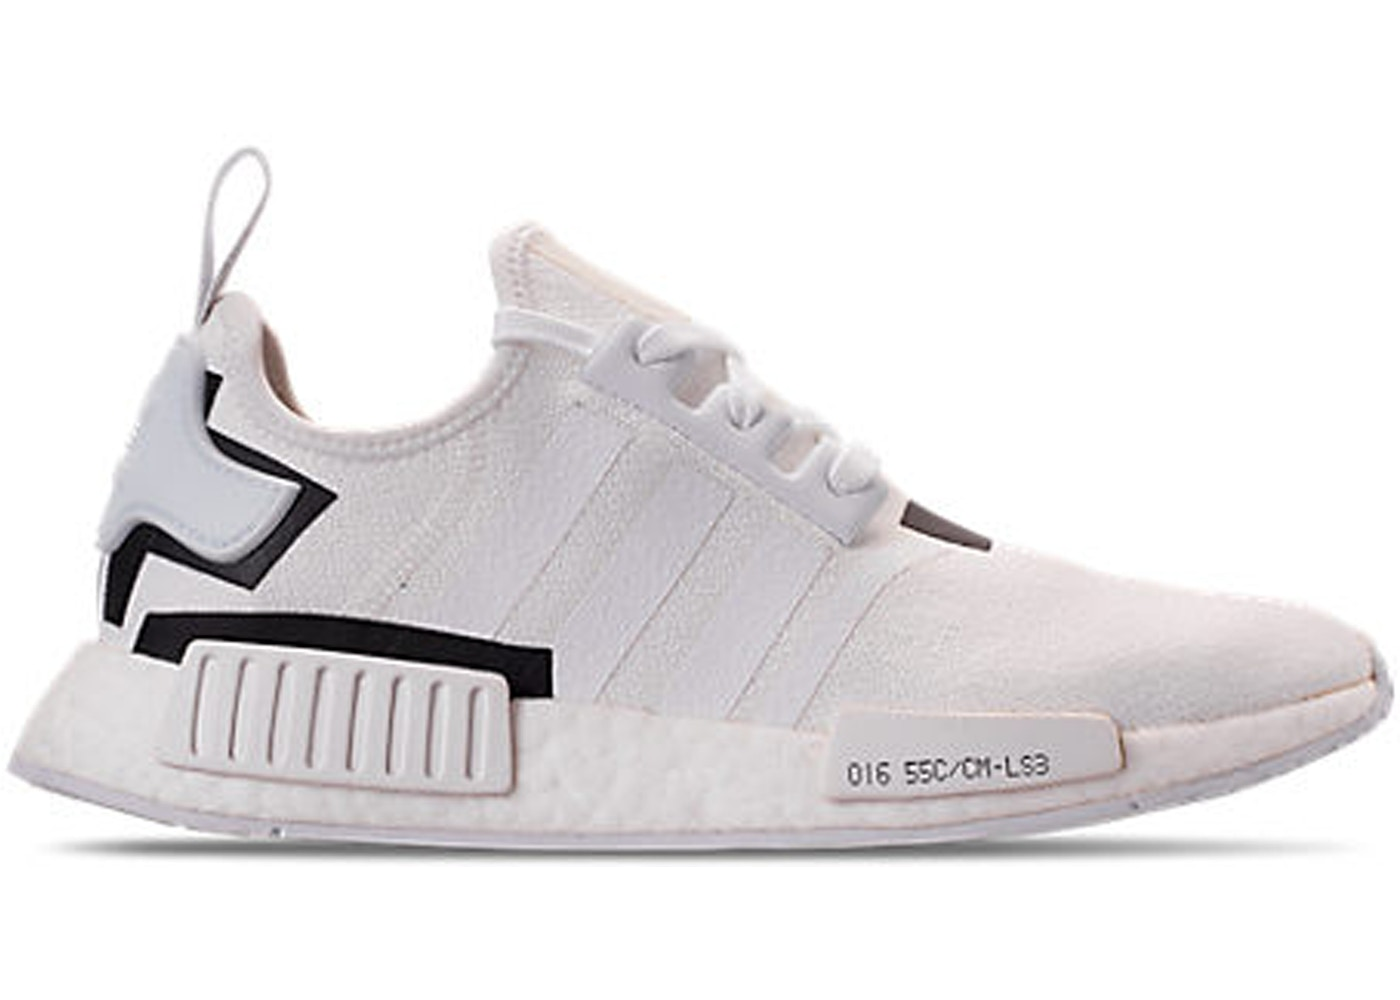 adidas NMD R1 Colorblock White Black